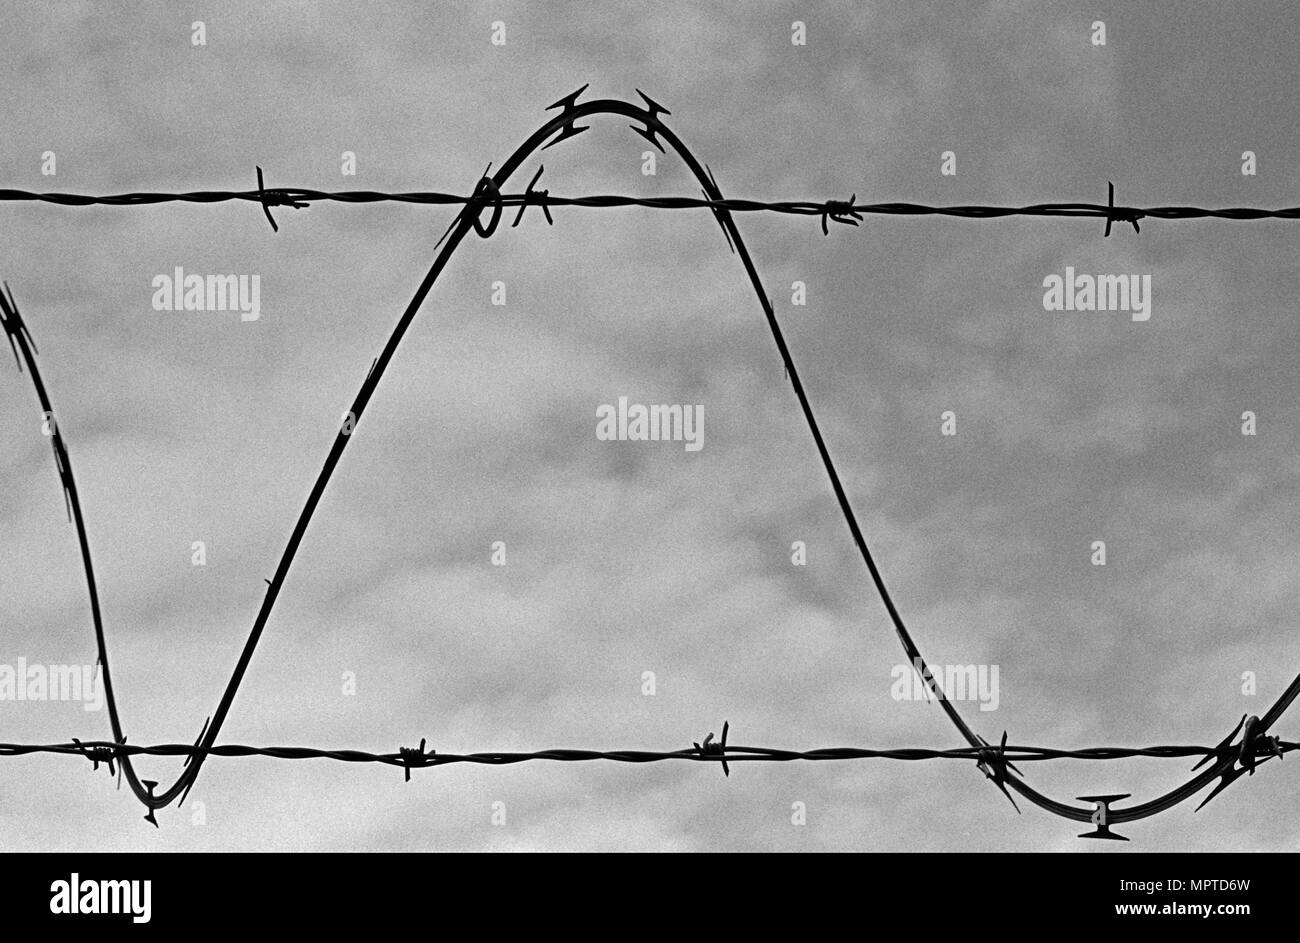 One strand of barbed wire winds around two other wires and forms a sine wave silhouetted against the sky. (Scanned from black and white film.) - Stock Image